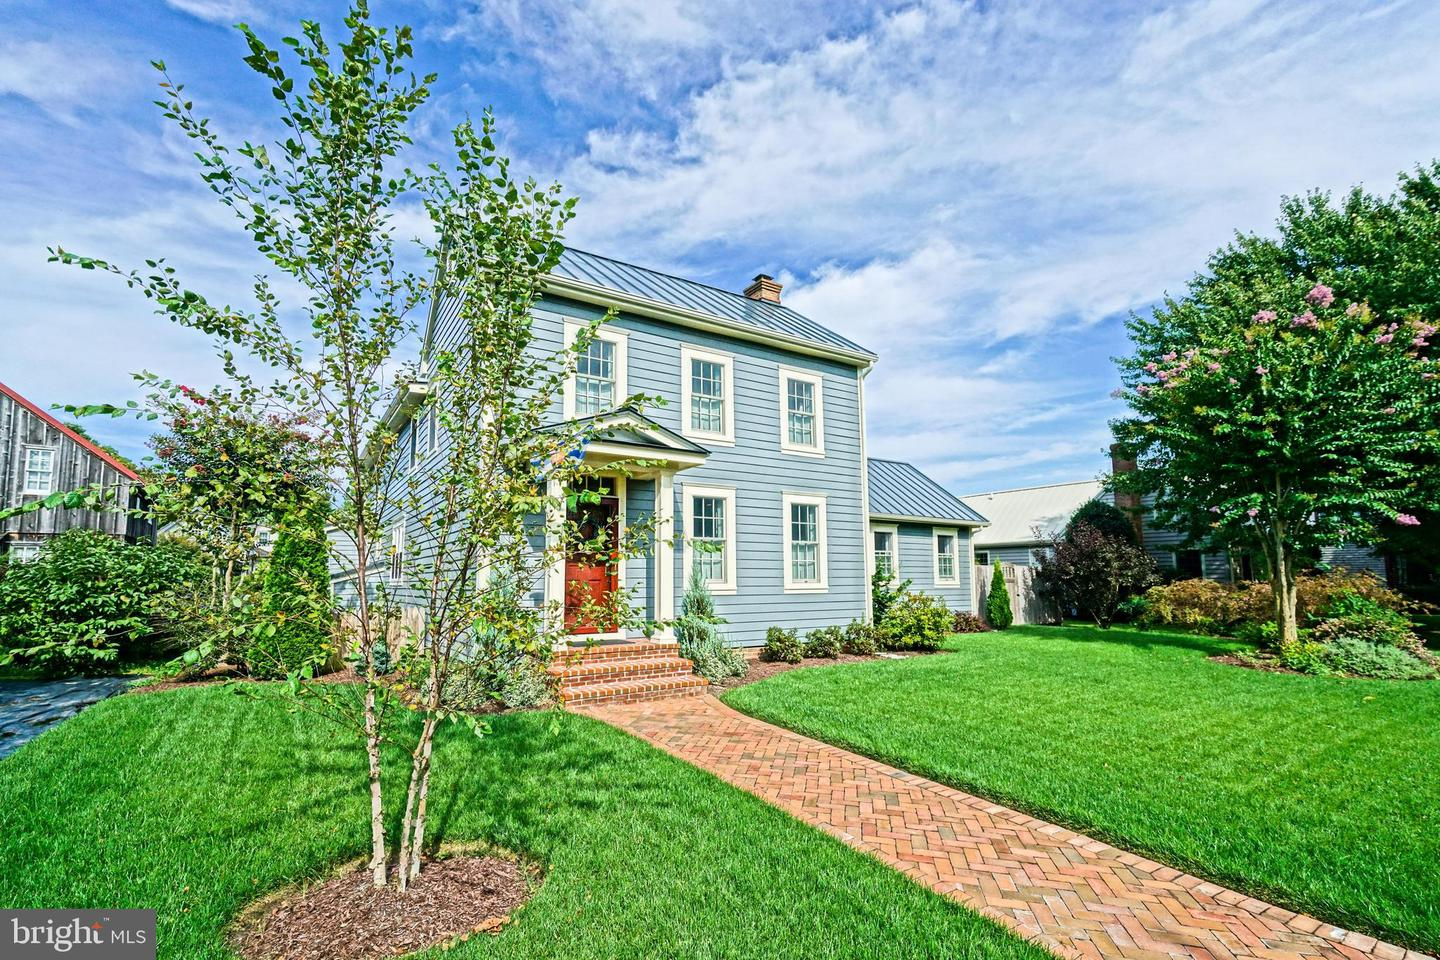 DESU147556-302019825309-2019-11-23-15-34-58 36 Shipcarpenter Sq | Lewes, DE Real Estate For Sale | MLS# Desu147556  - Lee Ann Group